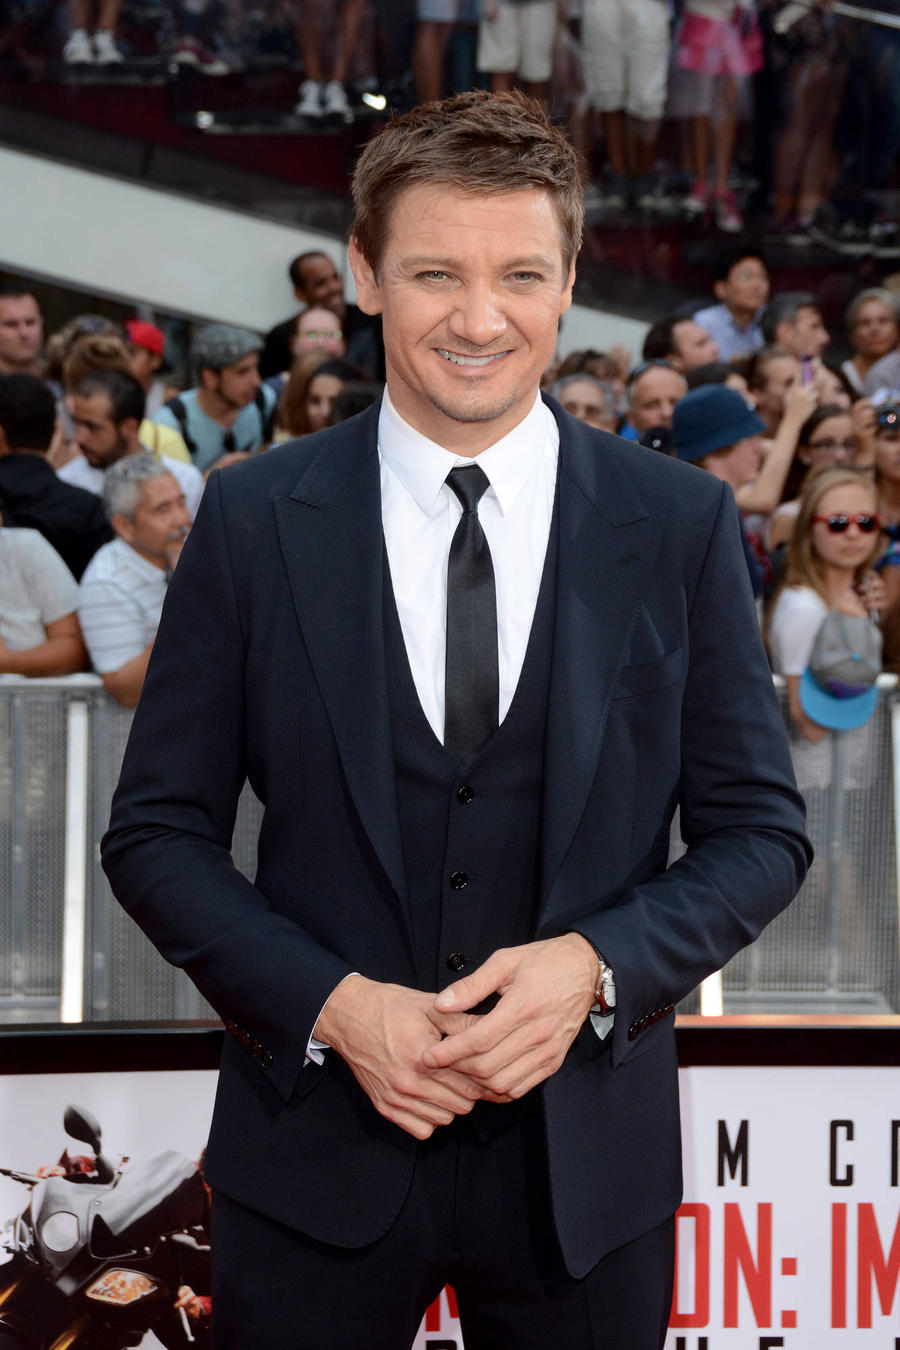 Jeremy Renner Proud Of Fearsome Face